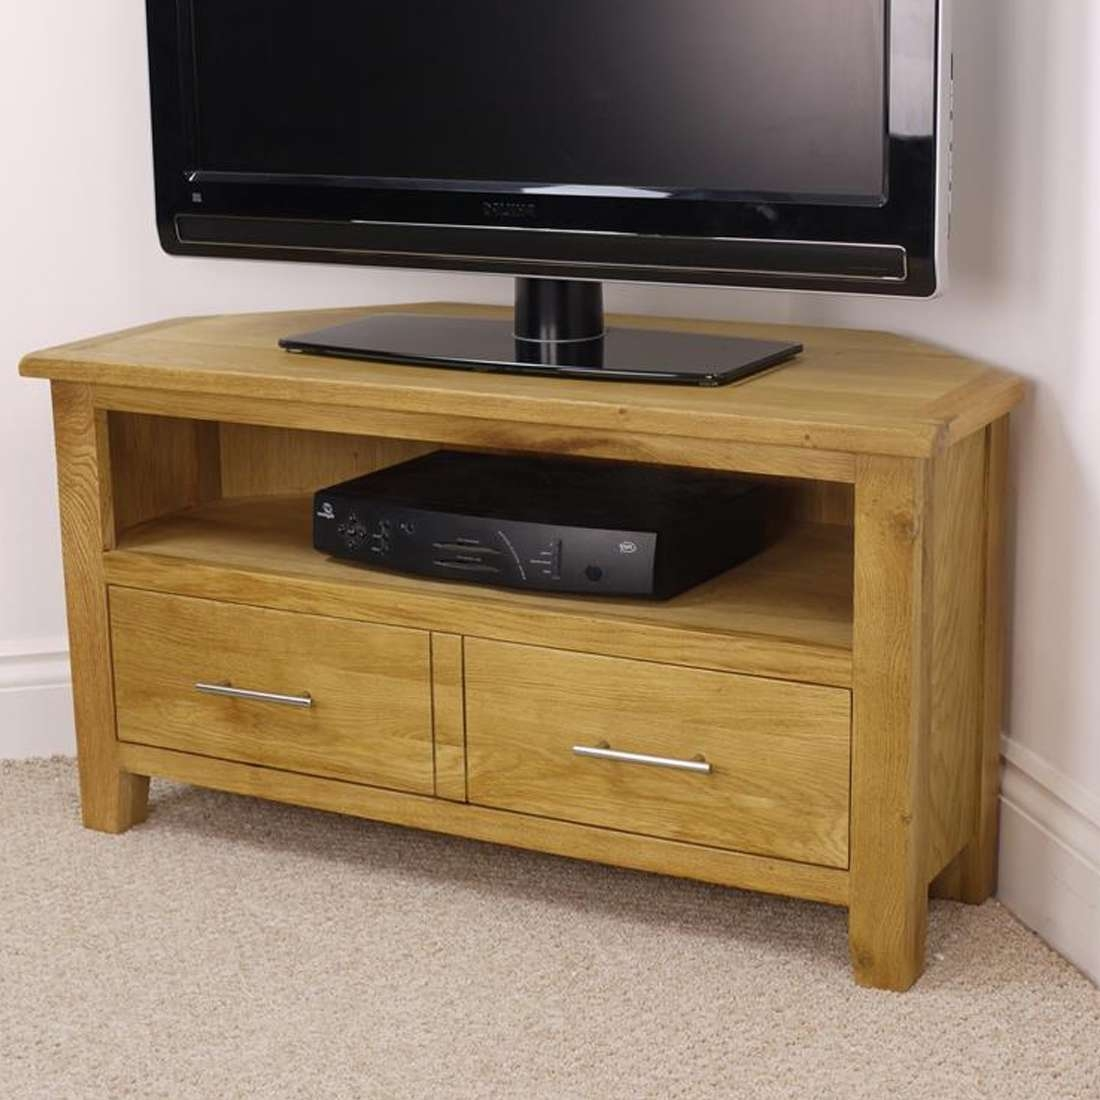 Nebraska Modern Oak Corner Tv Unit / Solid Wood Tv Stand / Oiled Pertaining To Oak Corner Tv Stands (View 8 of 15)